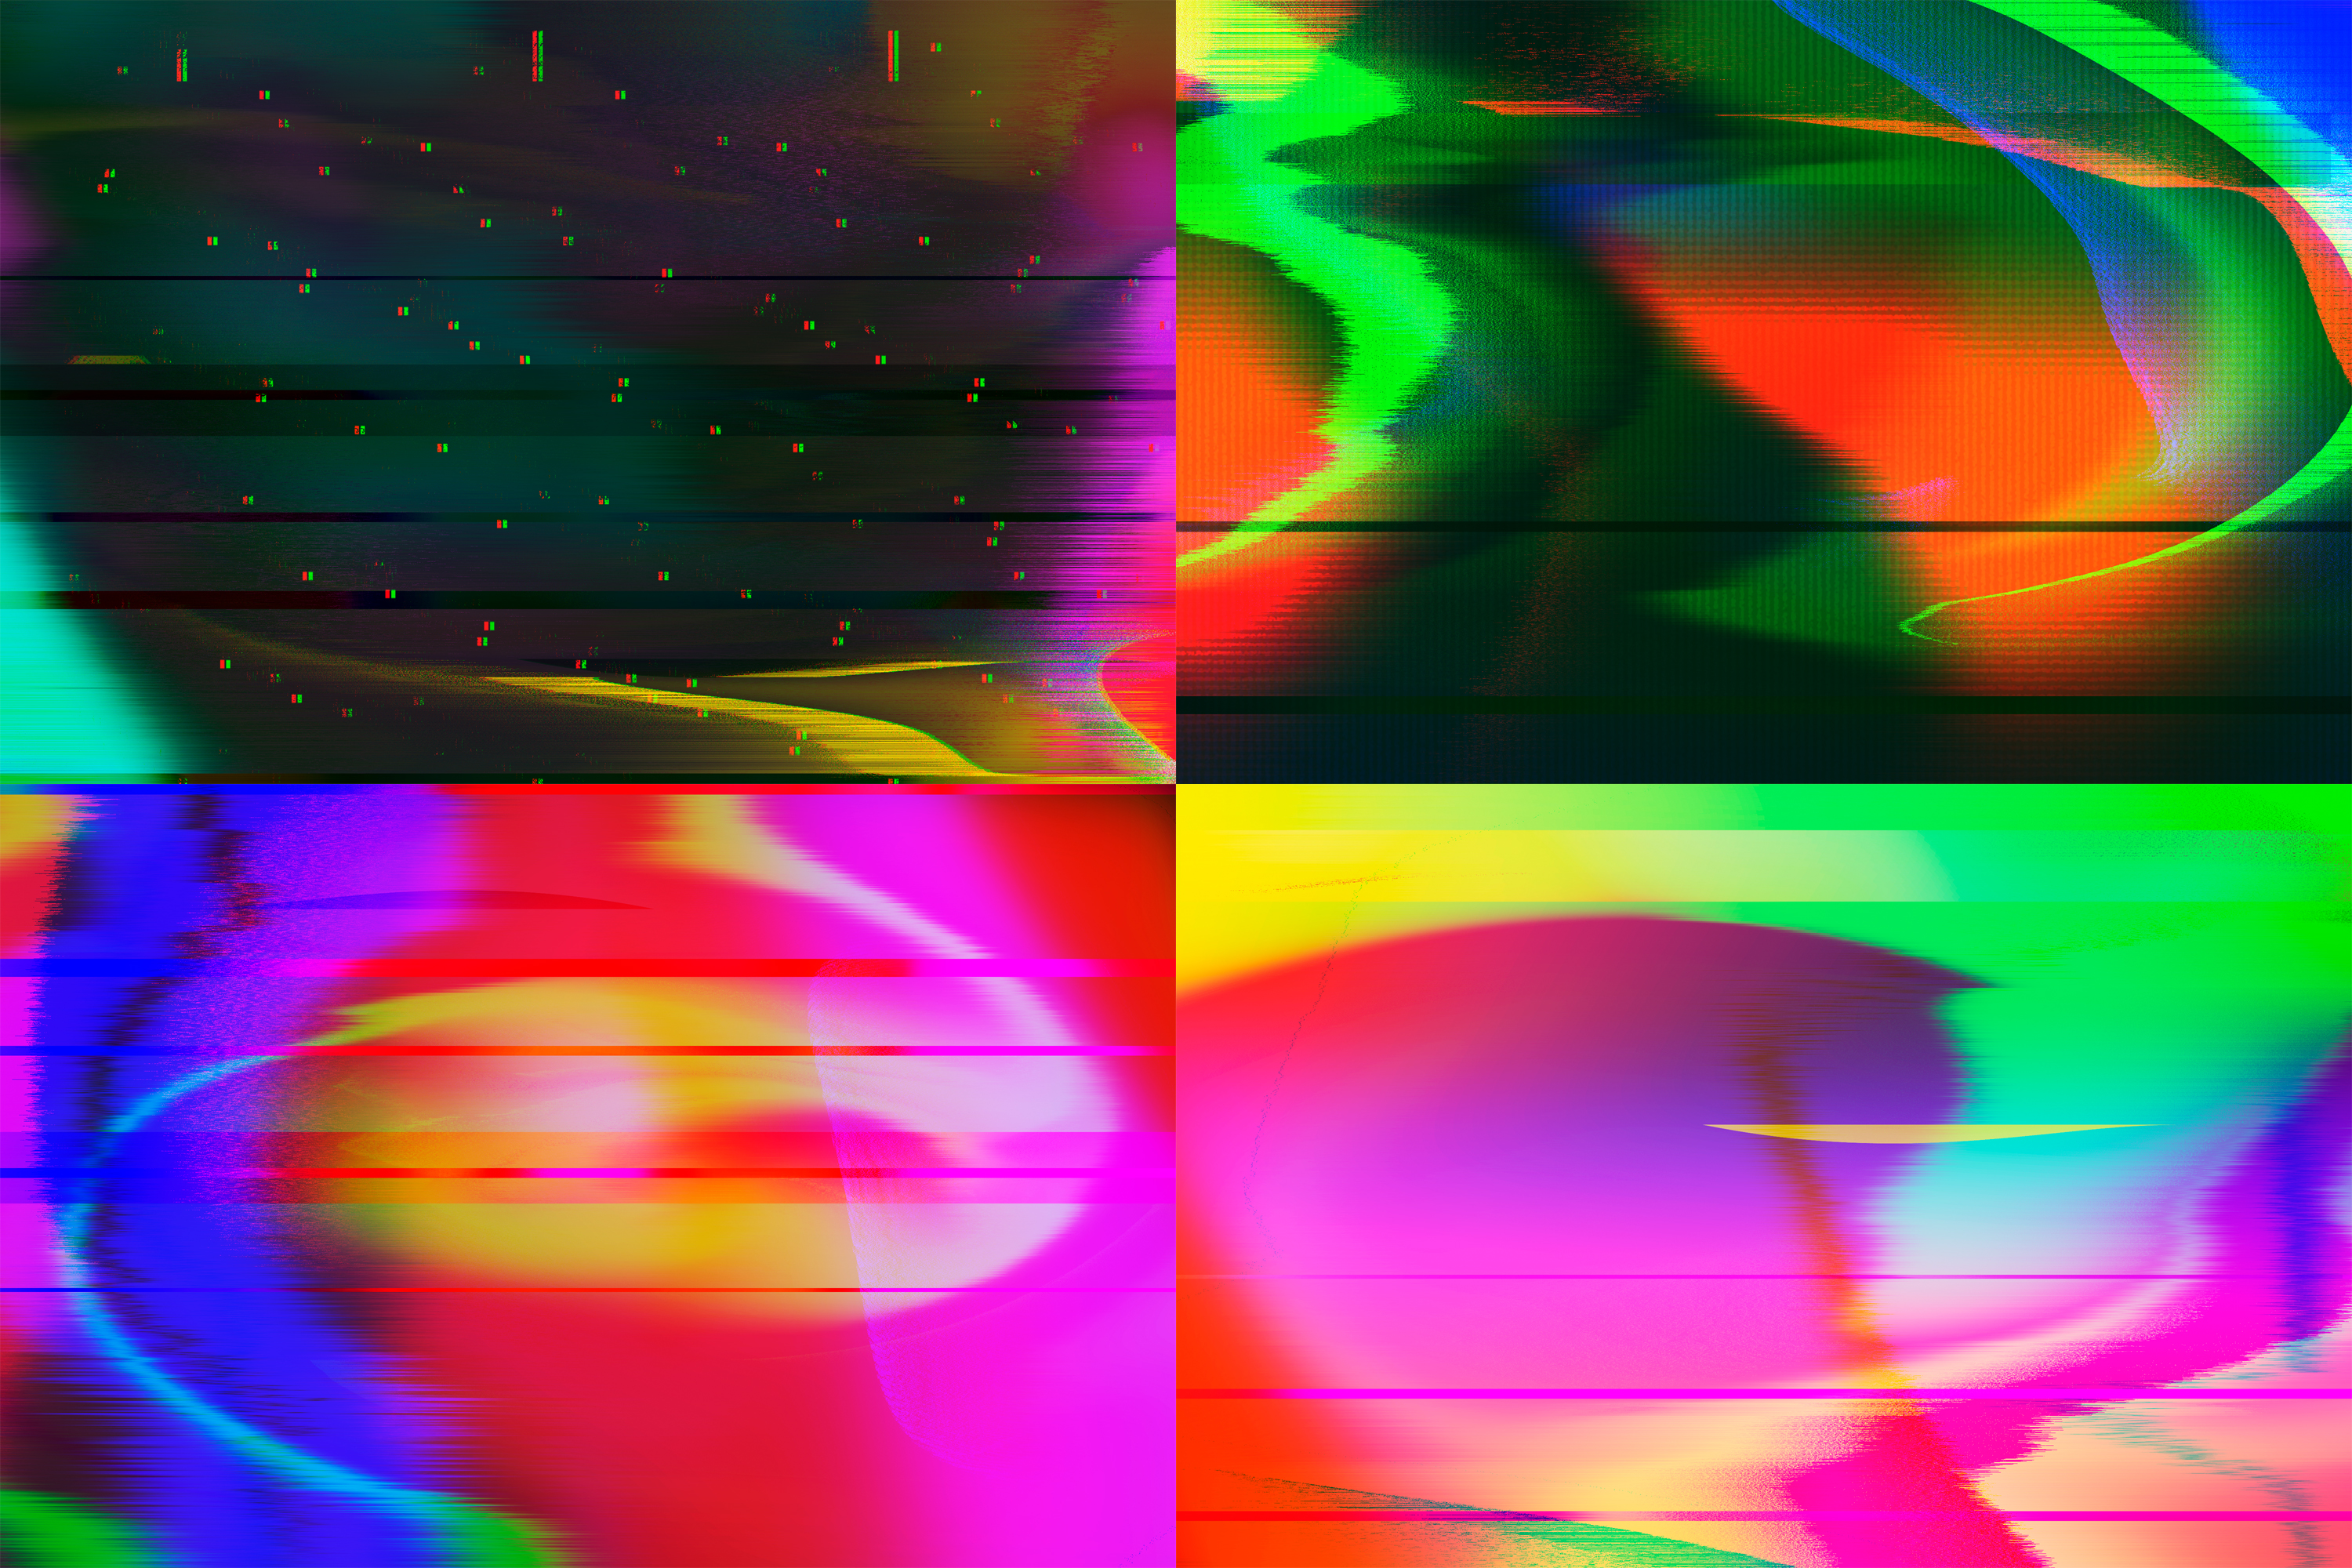 Abstract Glitched Backgrounds Pack example image 2